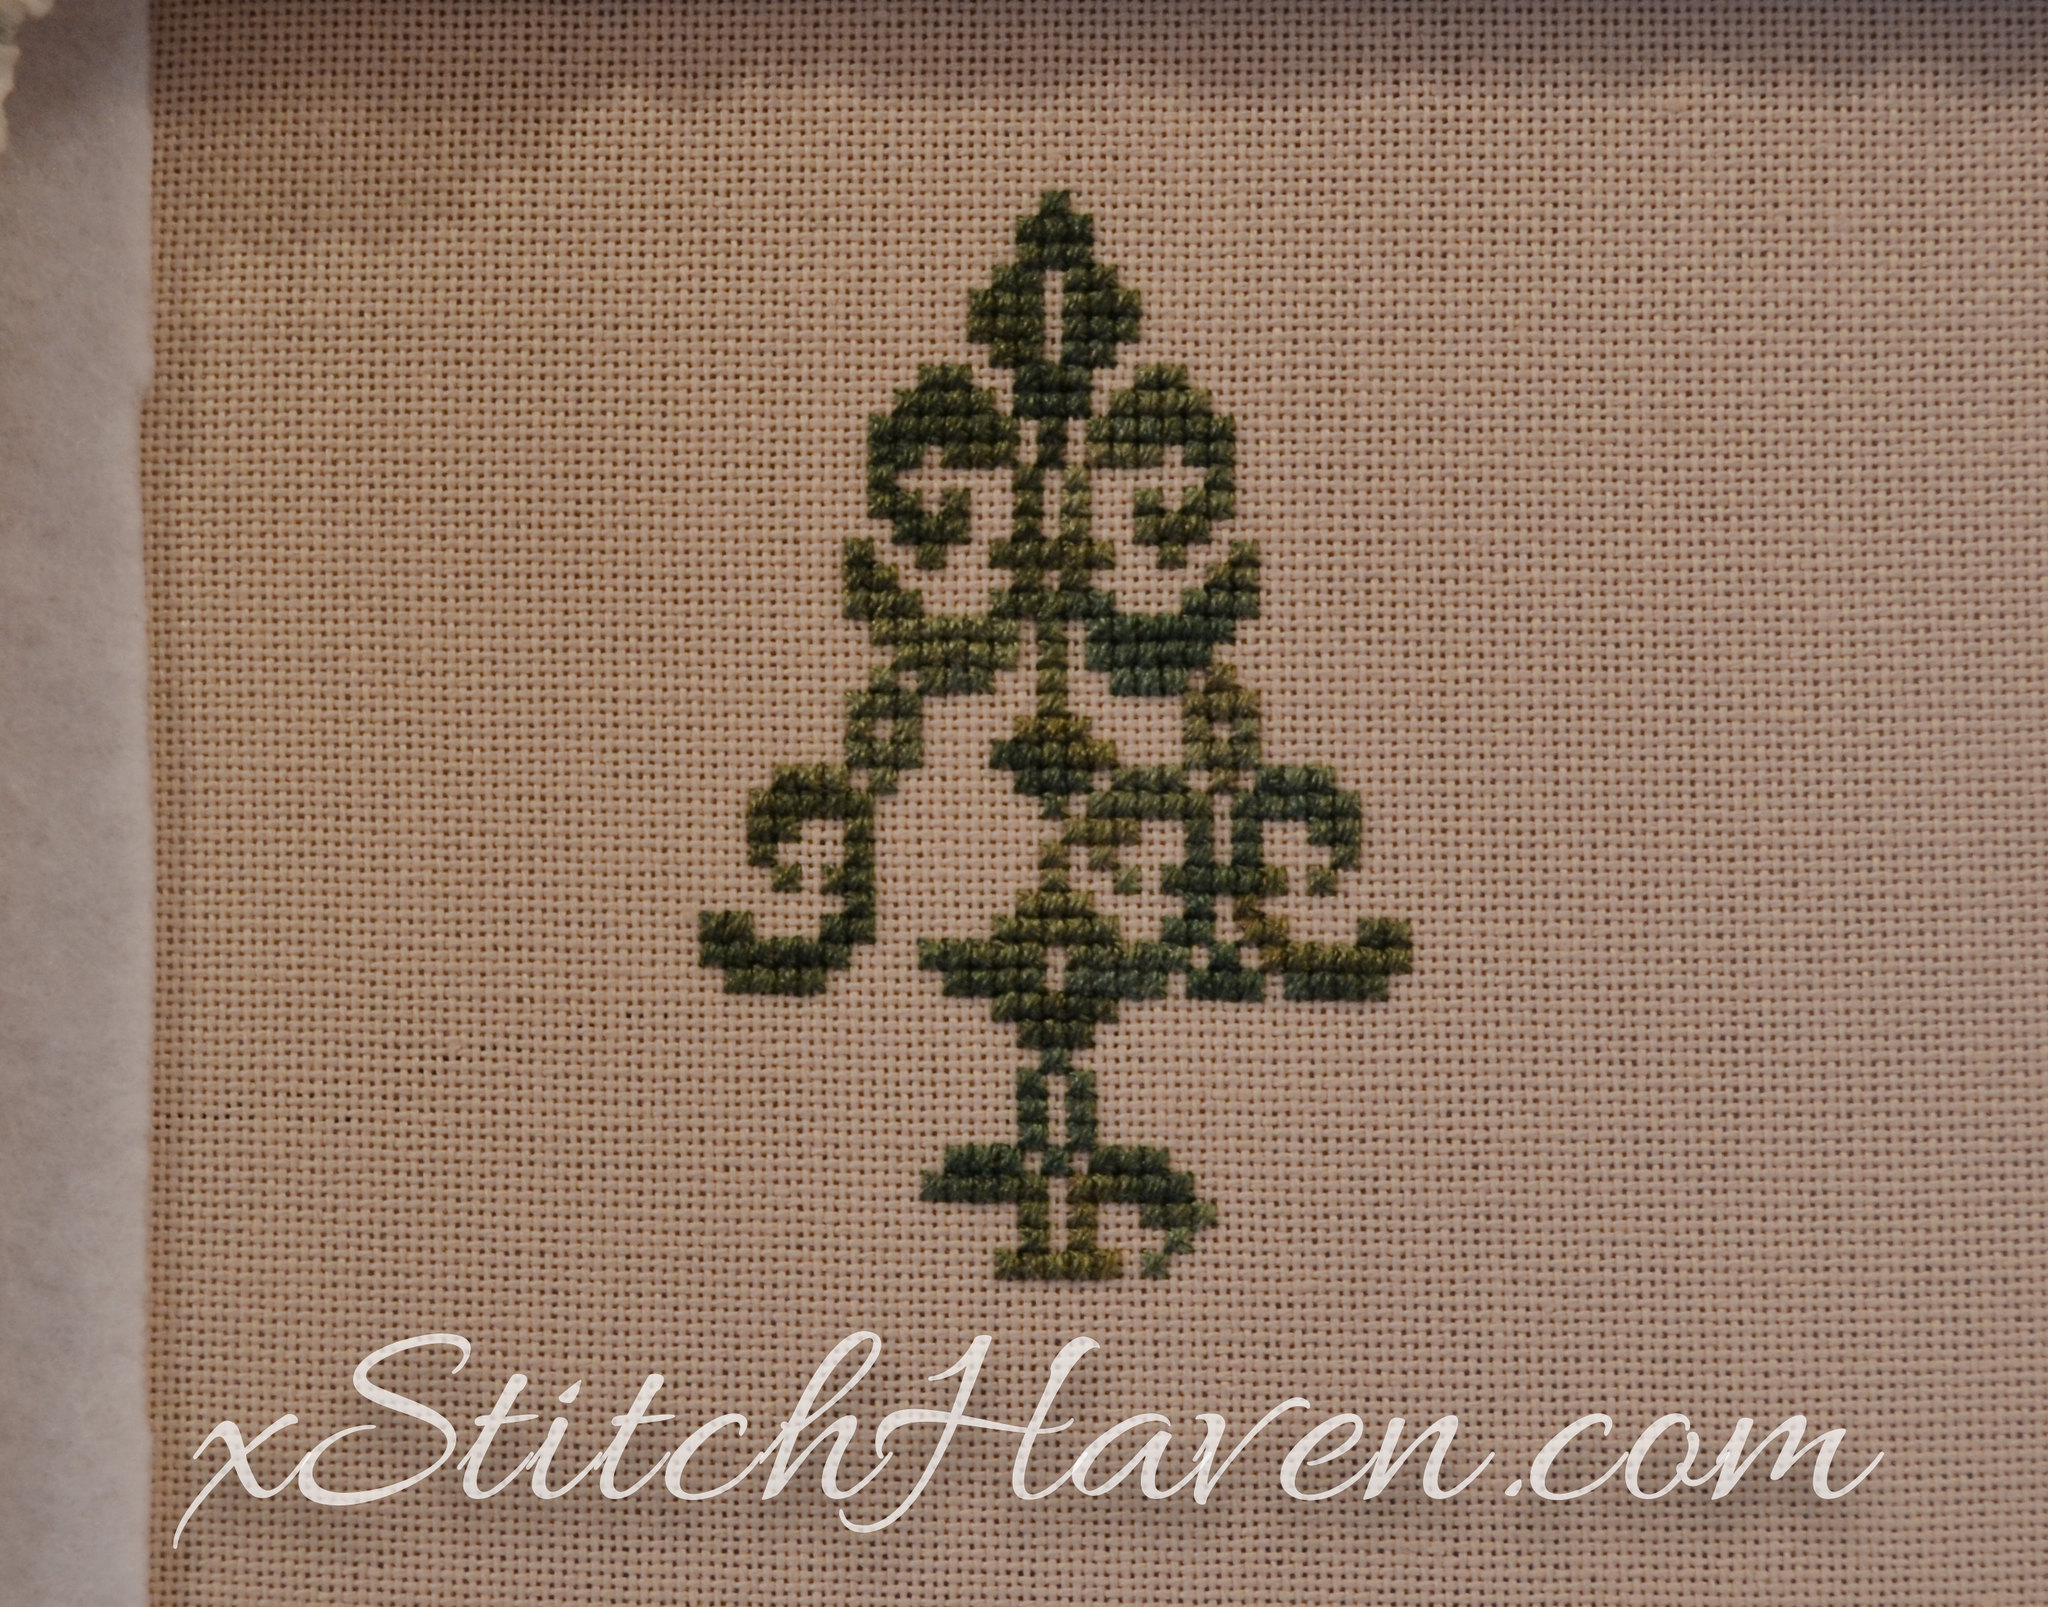 CrossStitch_20141209_006-2